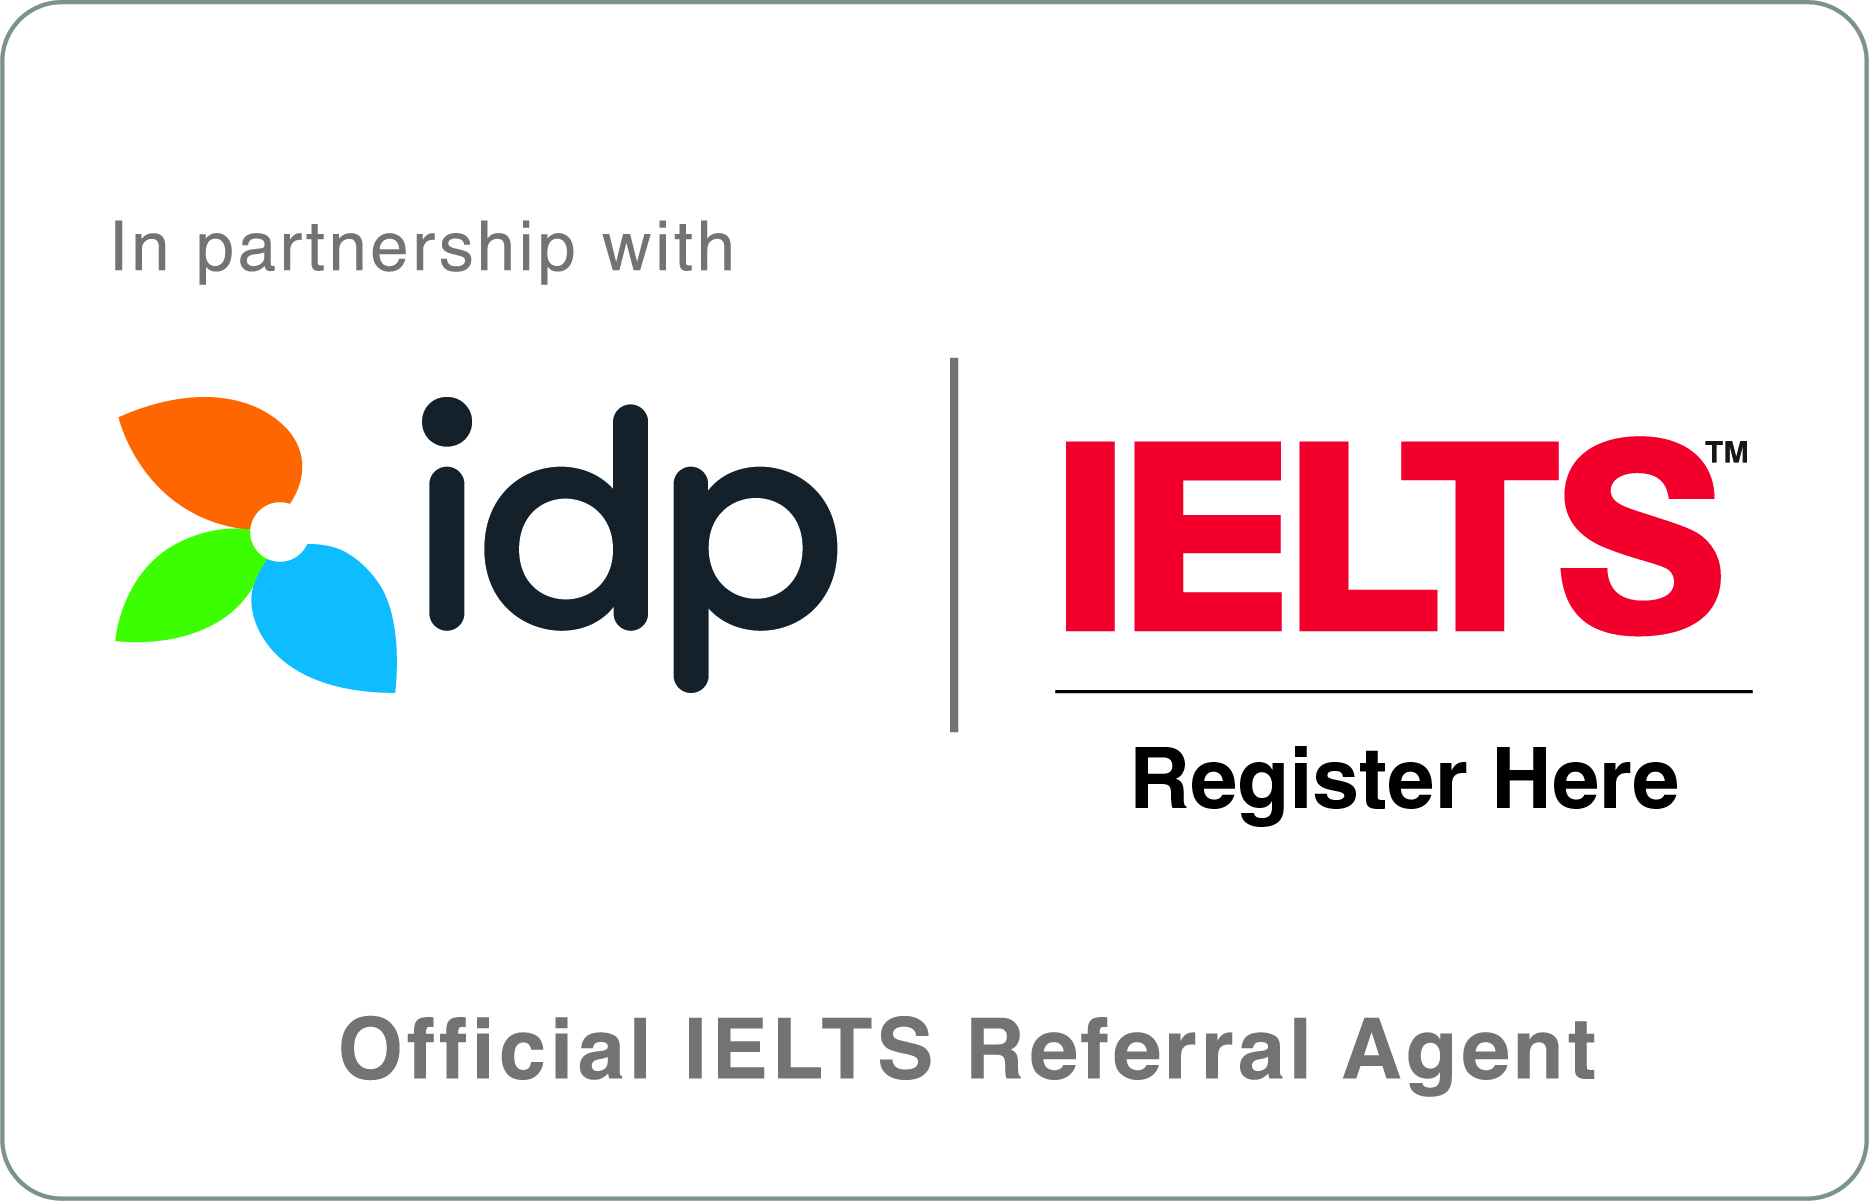 IELTS Registration